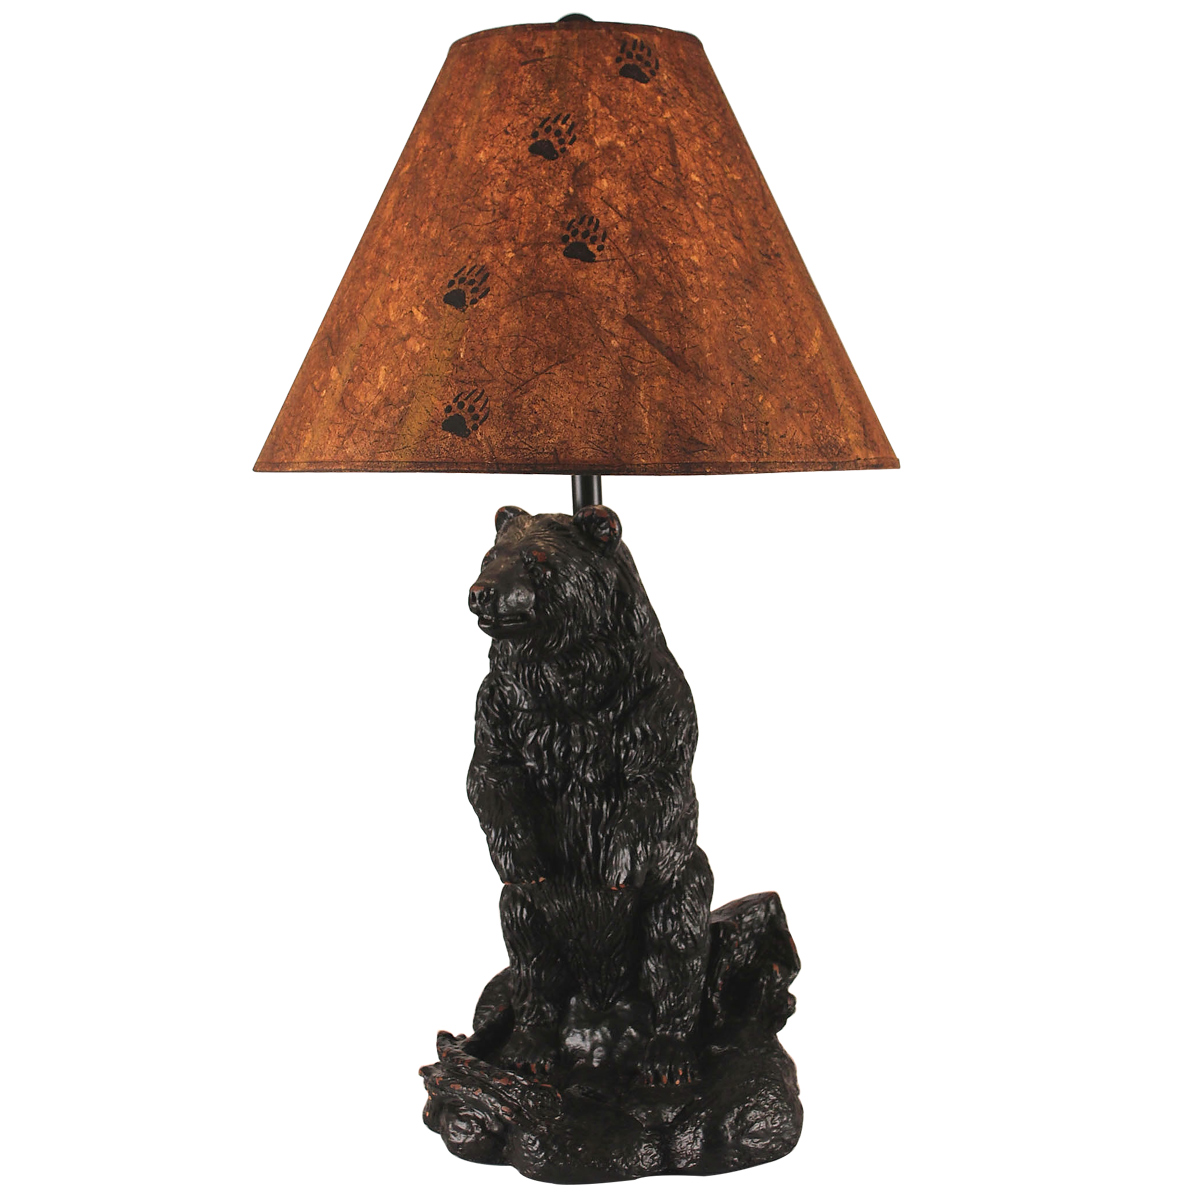 Black Forest Decor Curious bear table lamp with bear paw ...